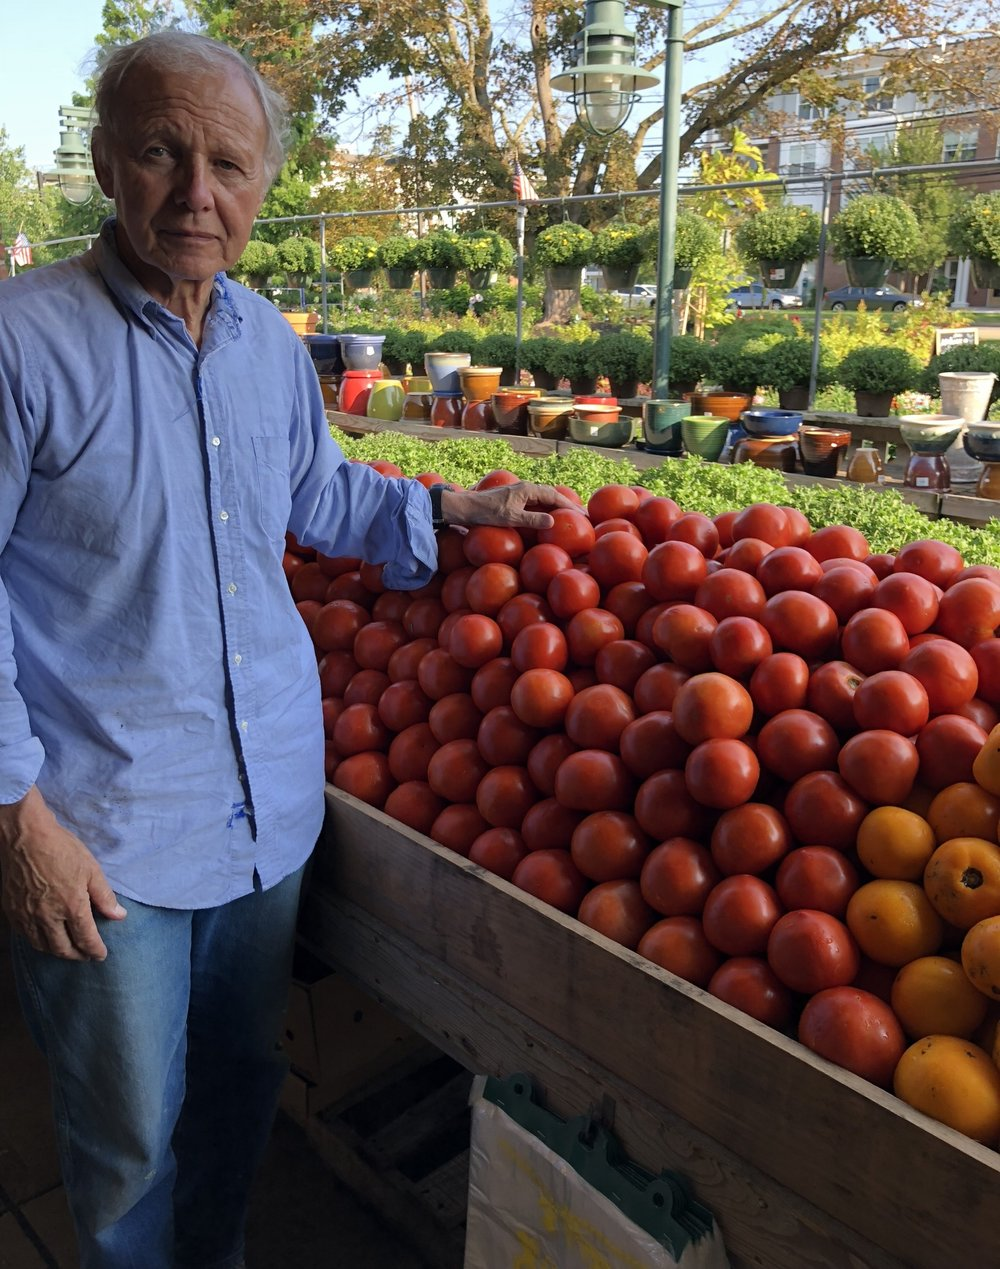 Tony Russo and the local tomatoes (that should be the name of a rock band!)